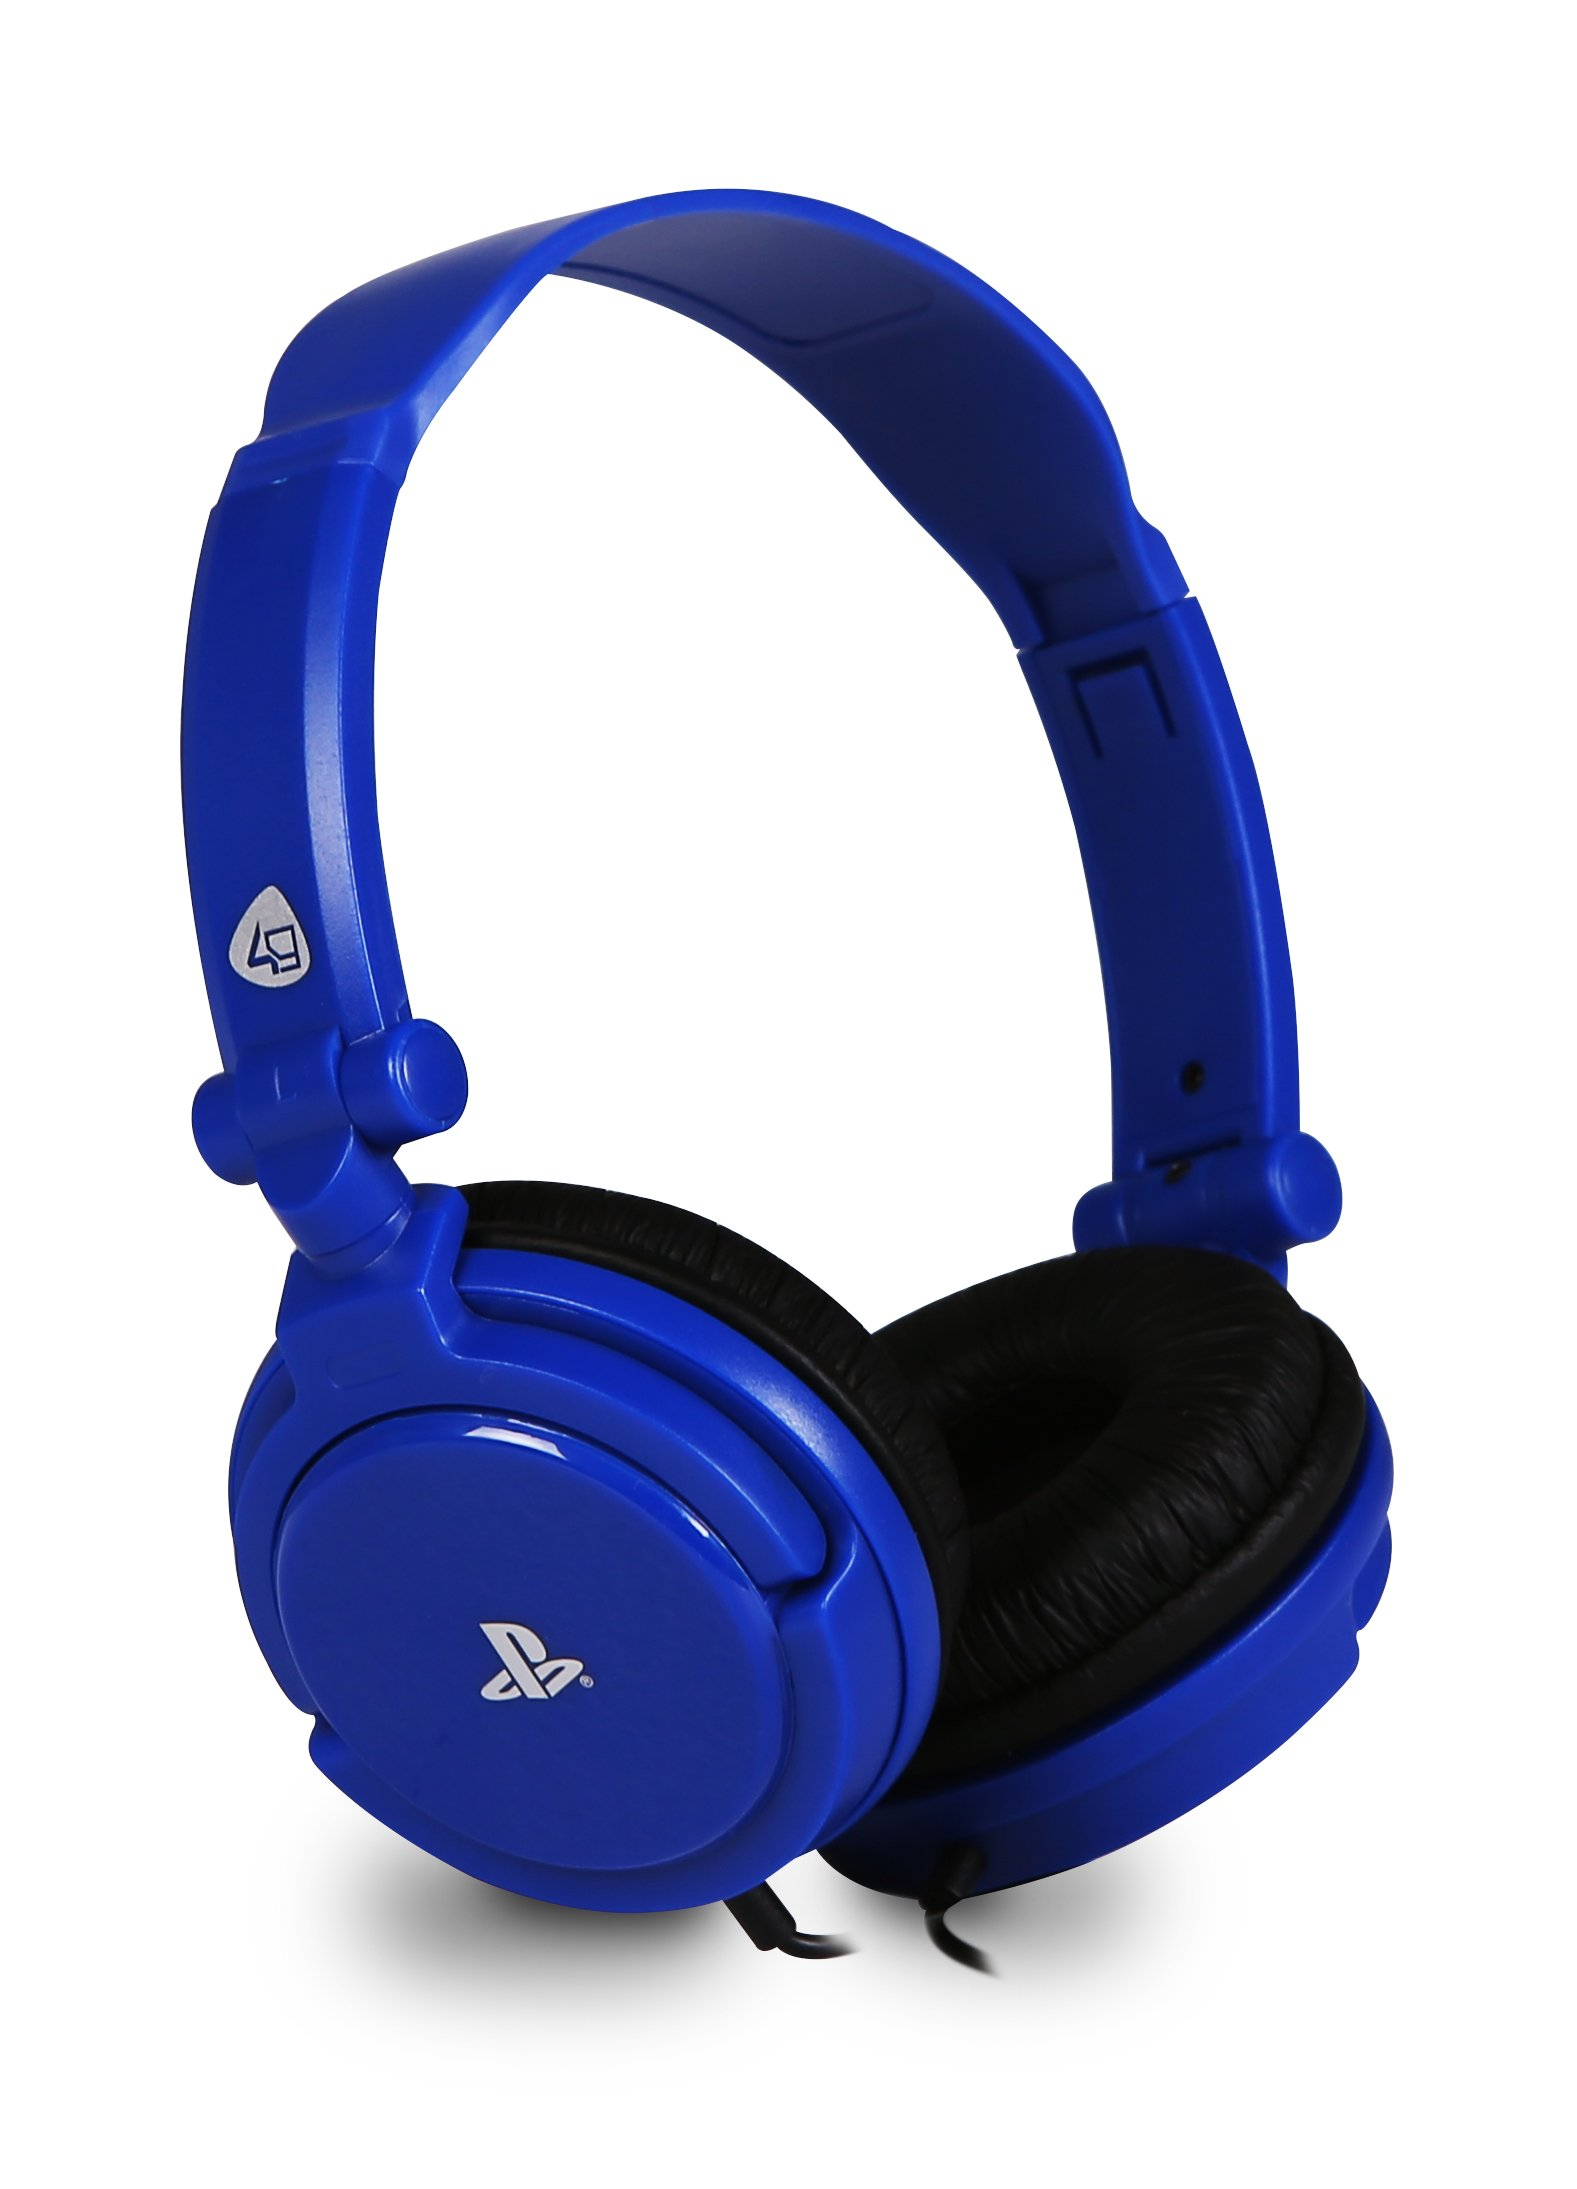 PRO4-10 Officially Licensed Stereo Gaming Headset - Blue